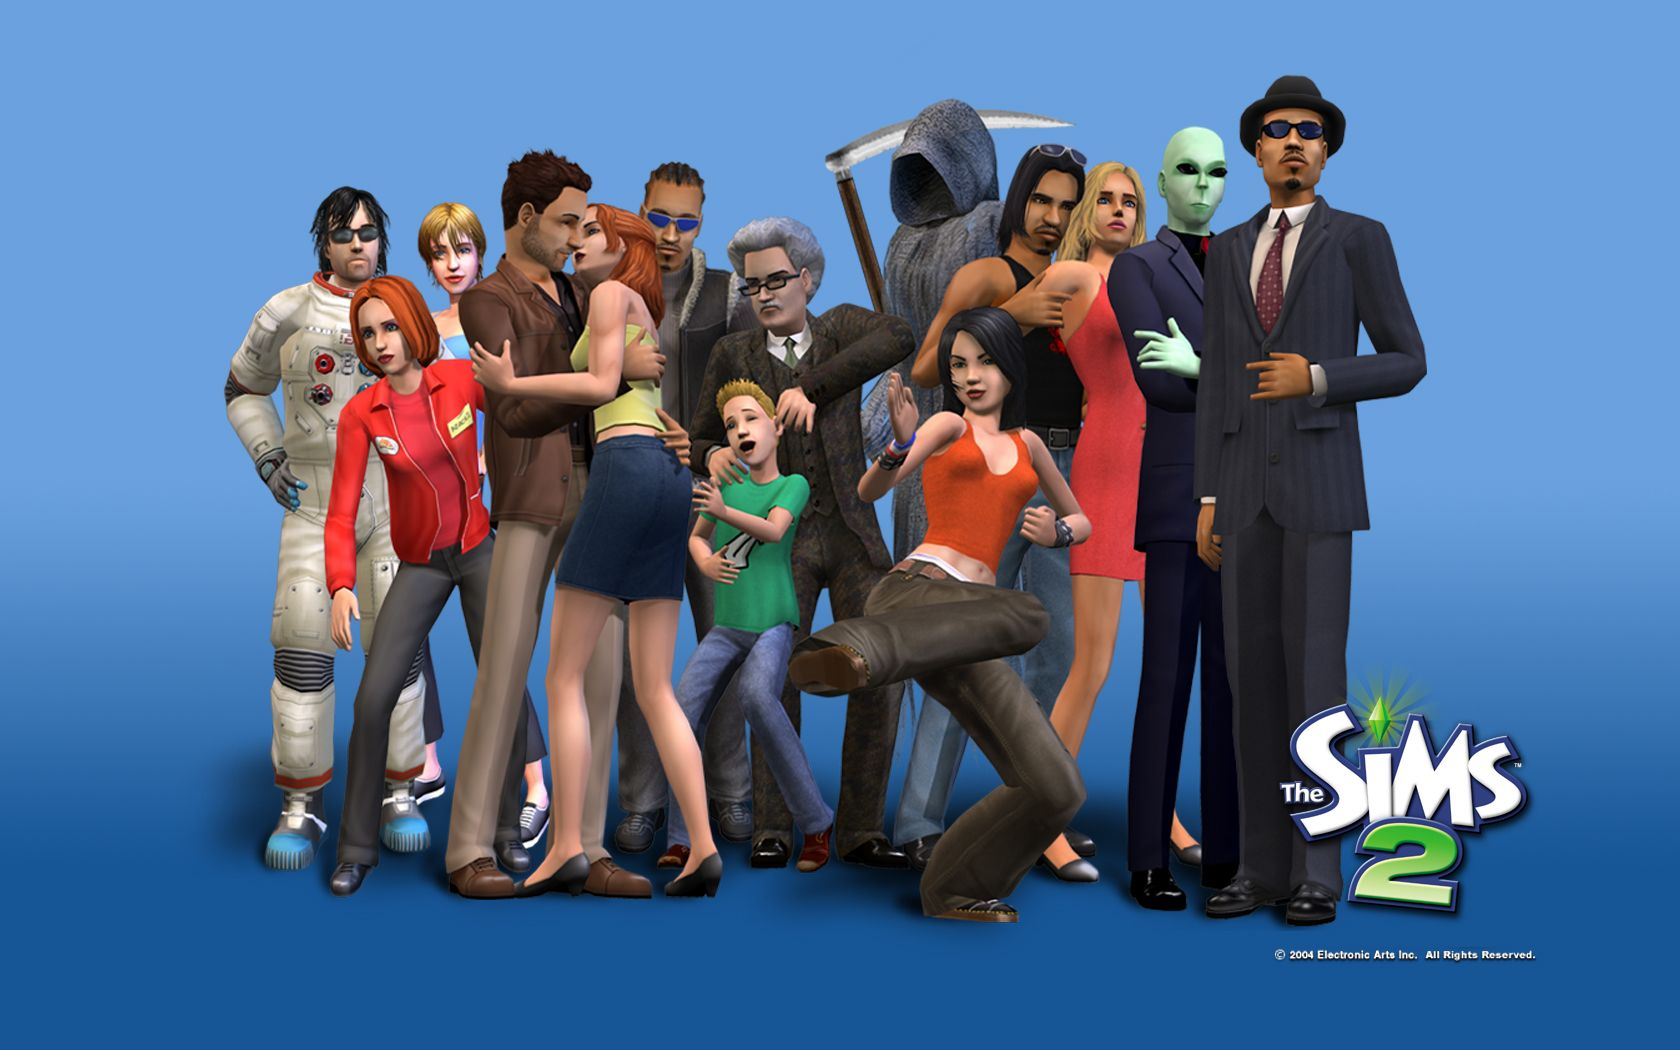 U0027The Sims 2 Ultimate Collectionu0027 Is Currently Free To Download On Origin